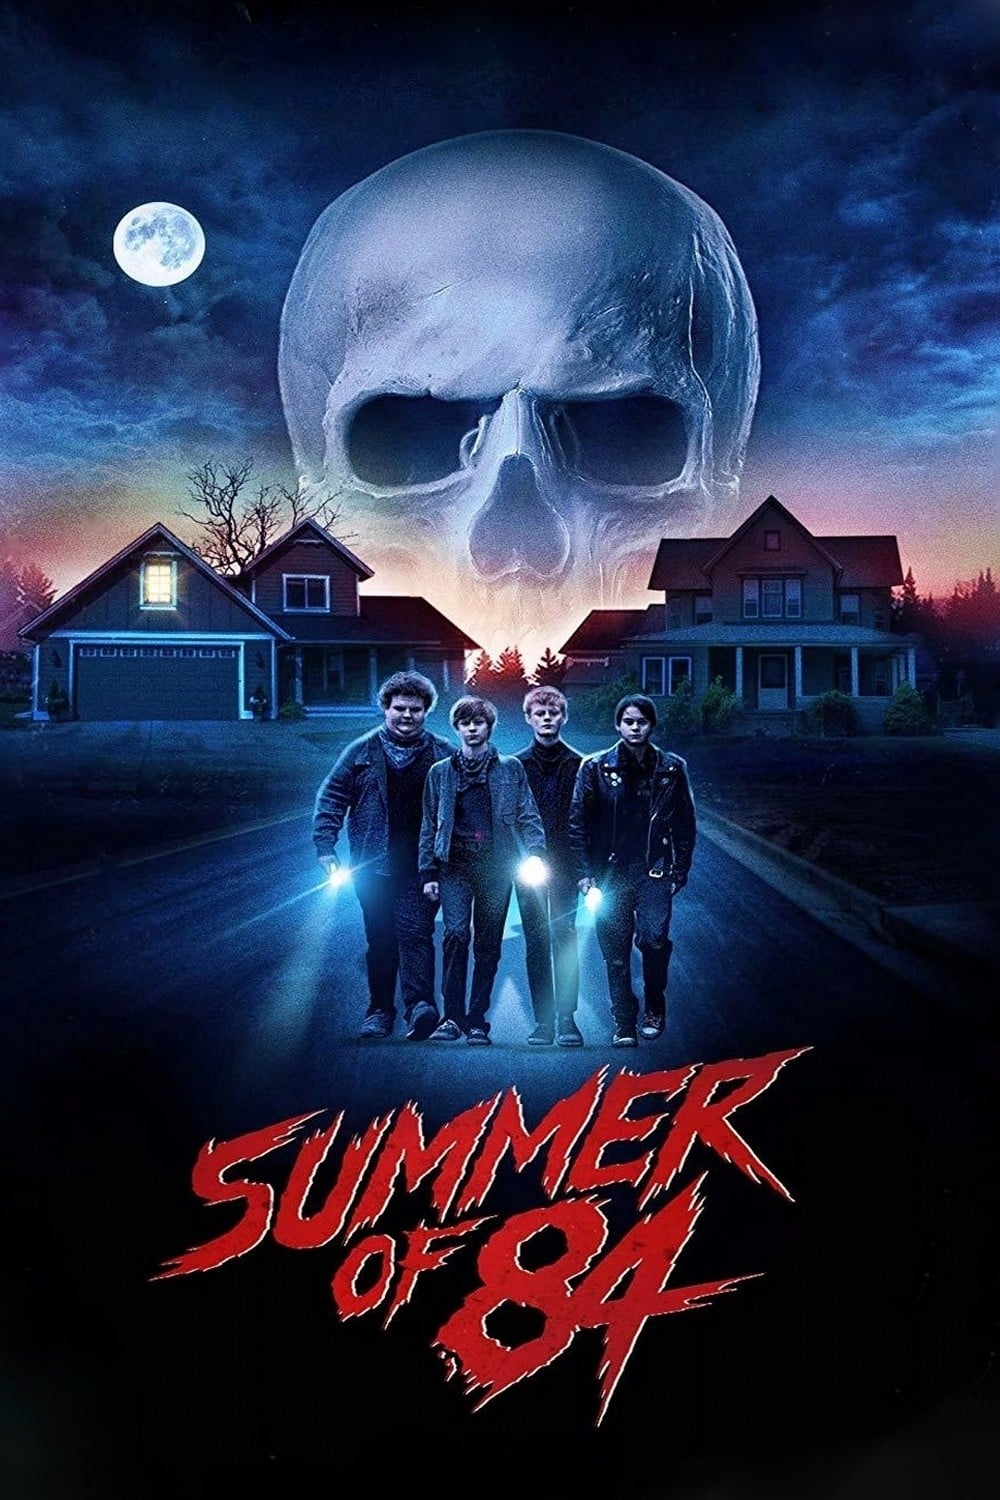 image for Summer of 84